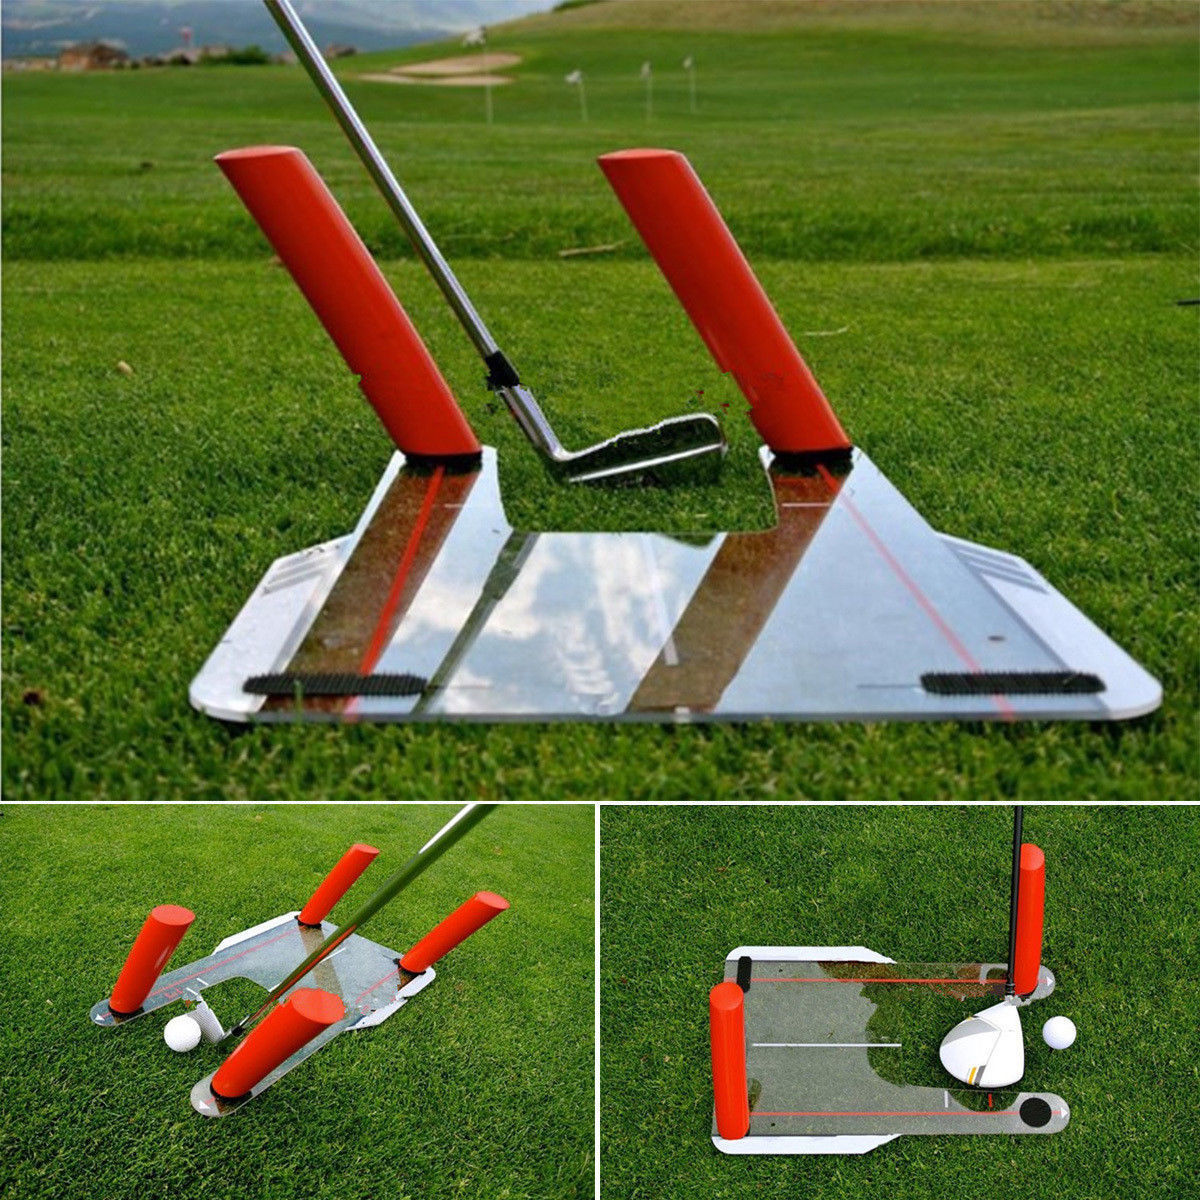 PC Golf Alignment Trainer Aid Swing Training Speed Trap Practice Base 4 Speed Golf Accessories Tool